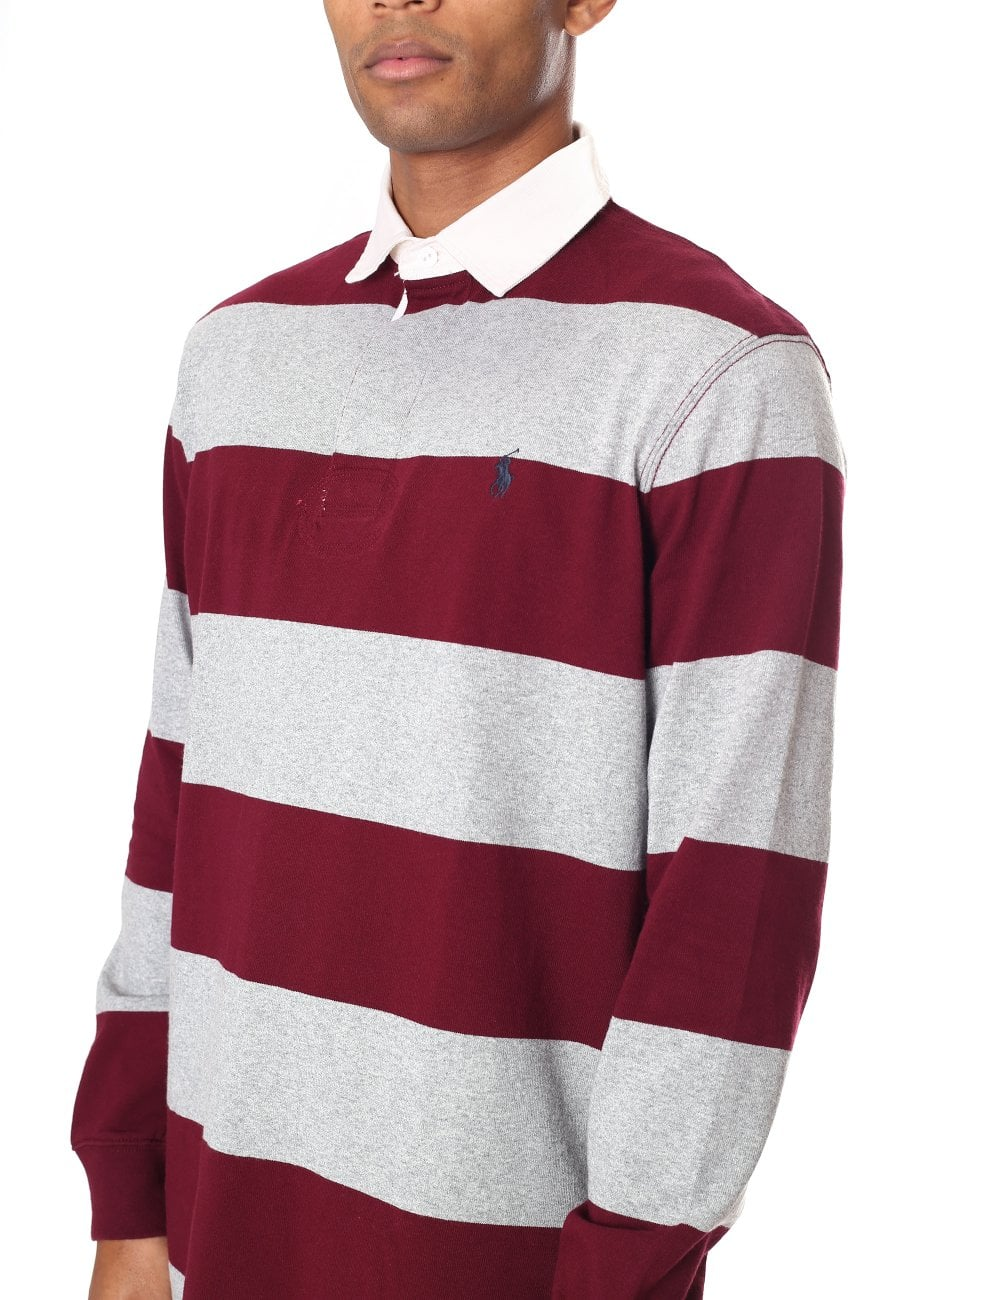 Men  039 s Polo Ralph Lauren Rugby Style Long Sleeve ... ef3d60971